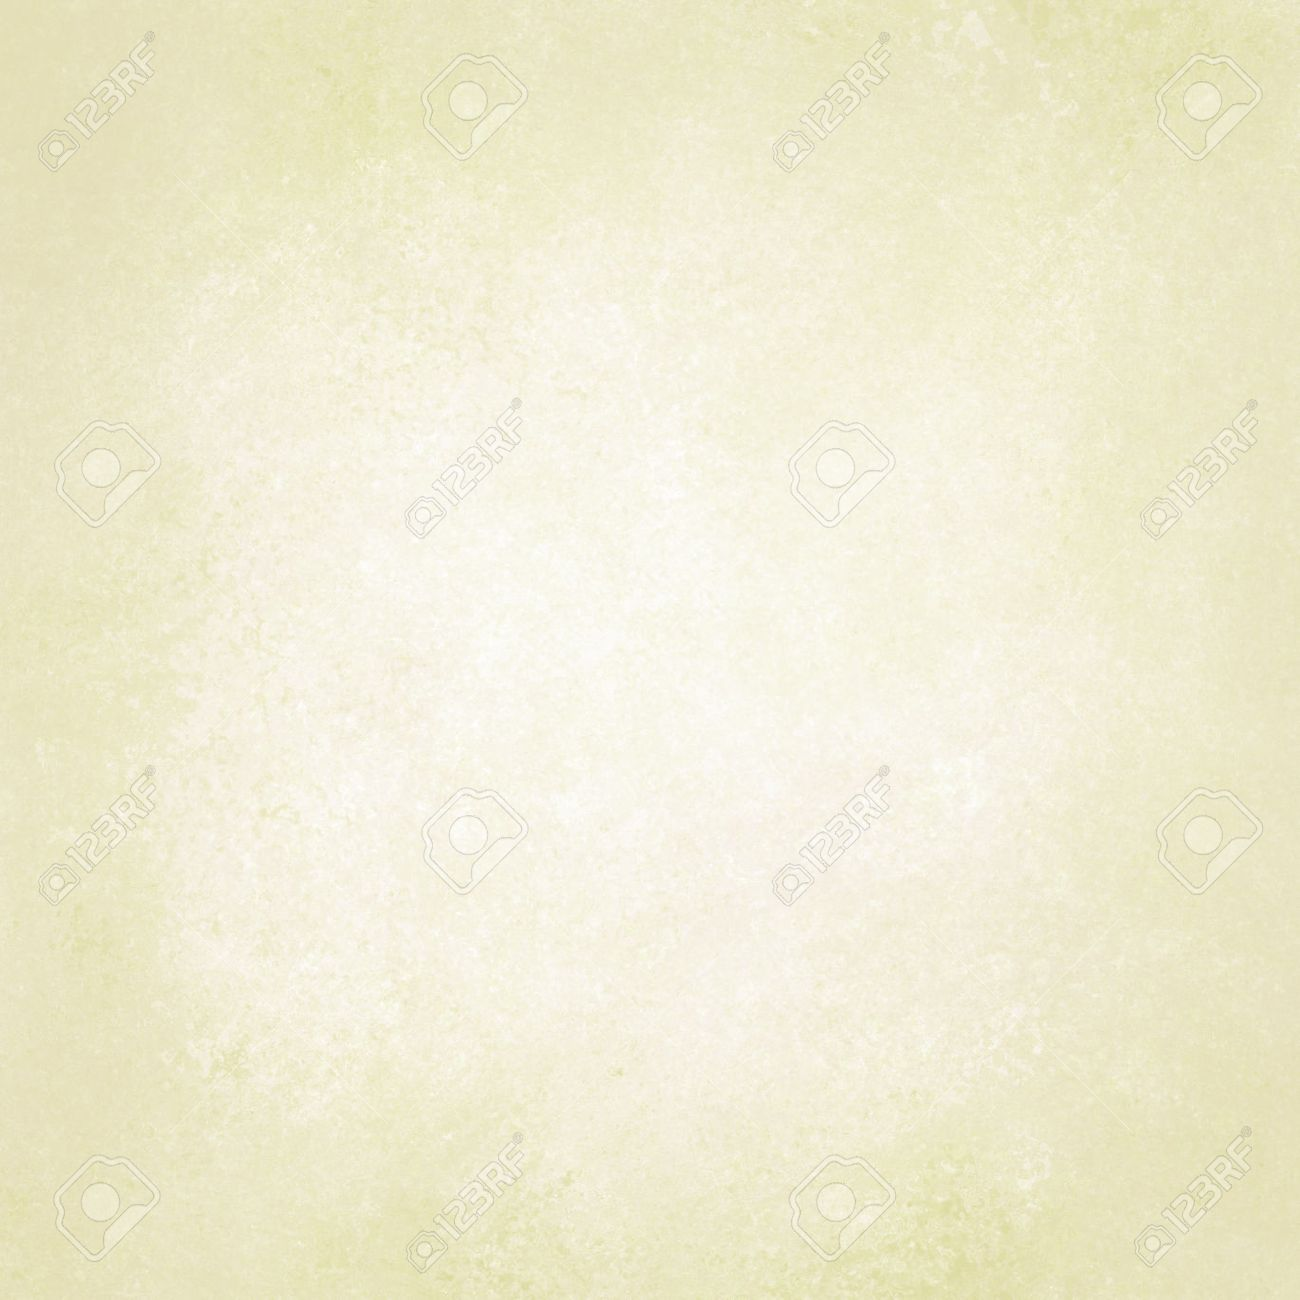 Pastel Yellow Paper Background White Or Pale Gold Beige Neutral Color Design Vintage Grunge